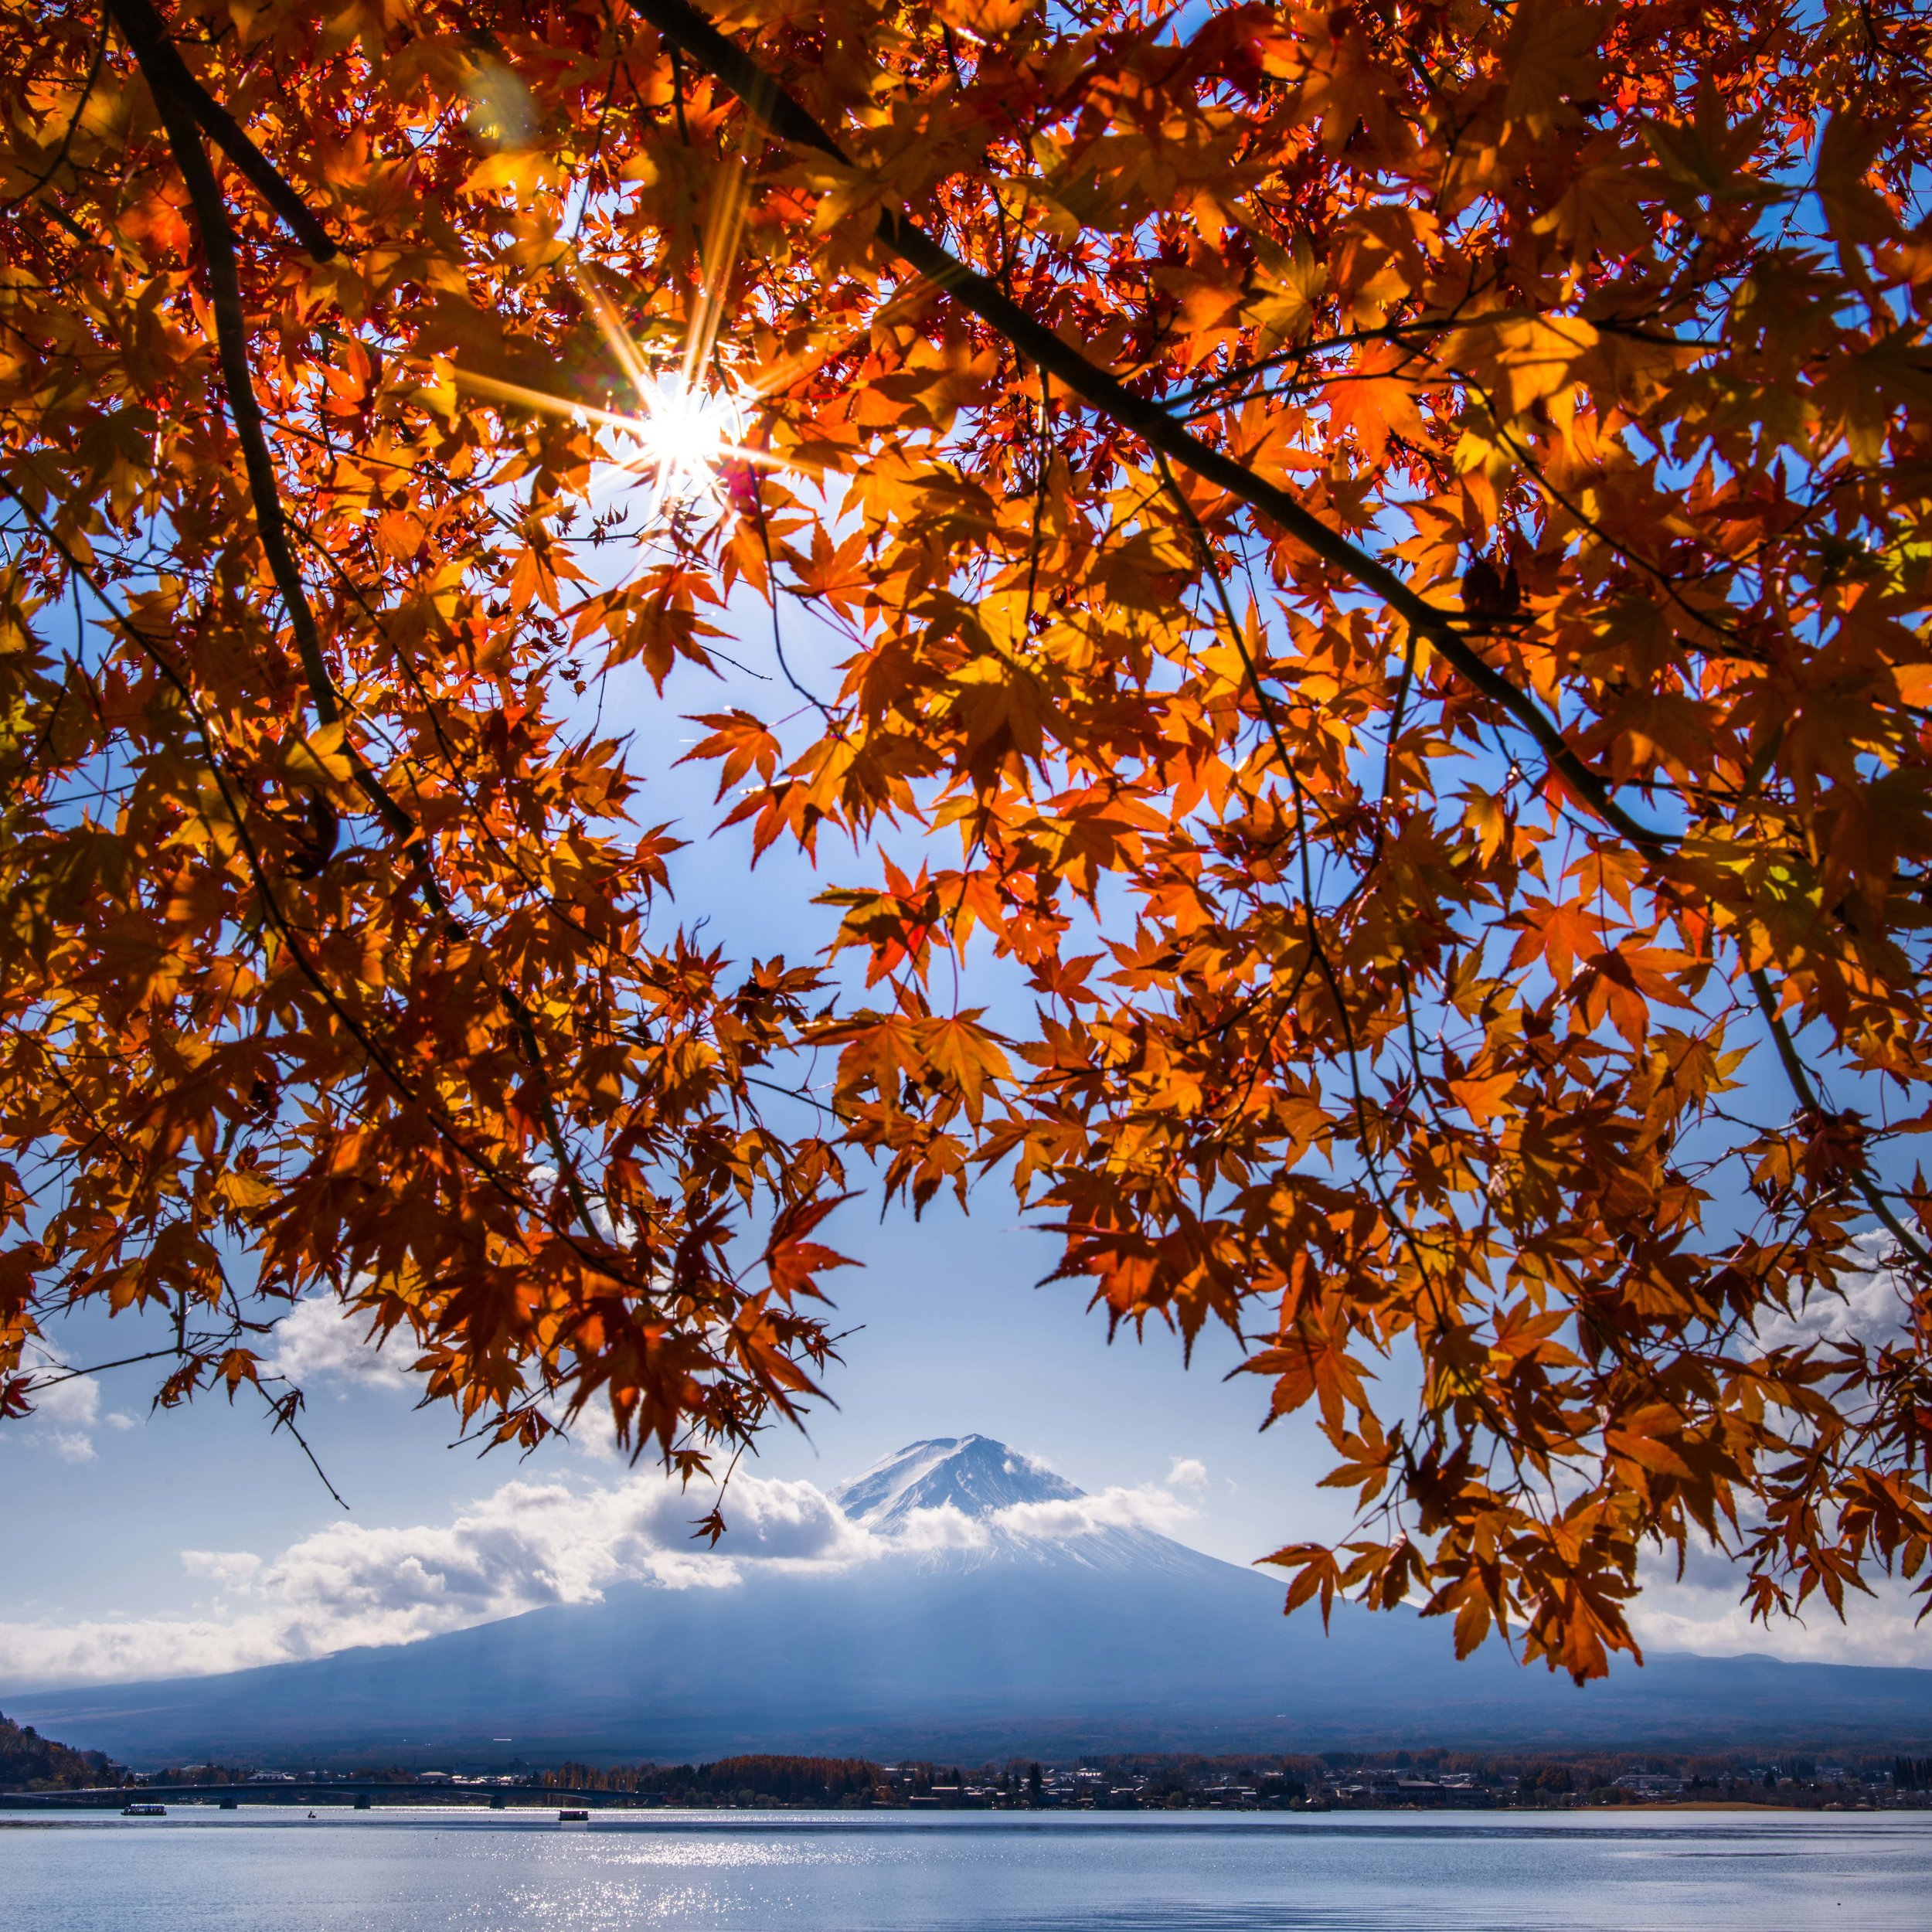 An Autumn Icon - Maple leaves and the snow-covered peak of mt. Fuji. Shot at Kawaguchiko.